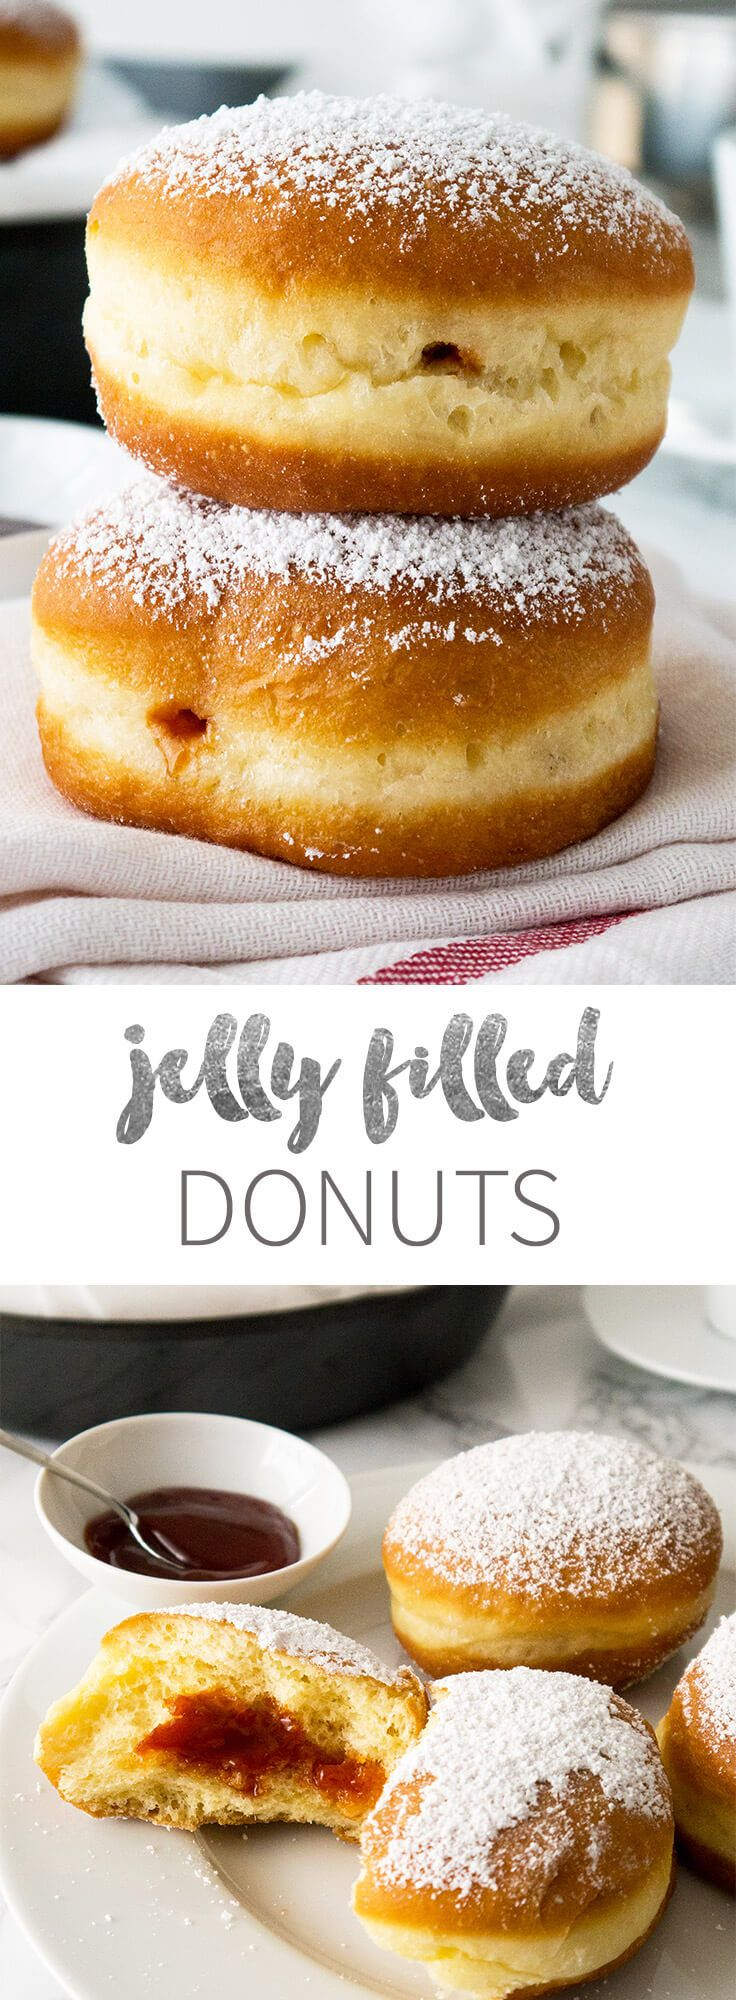 Jelly filled Donuts - sprinkled with confectioners' sugar and filled with rose hip jelly! These sweet treats are known as Krapfen in Germany.